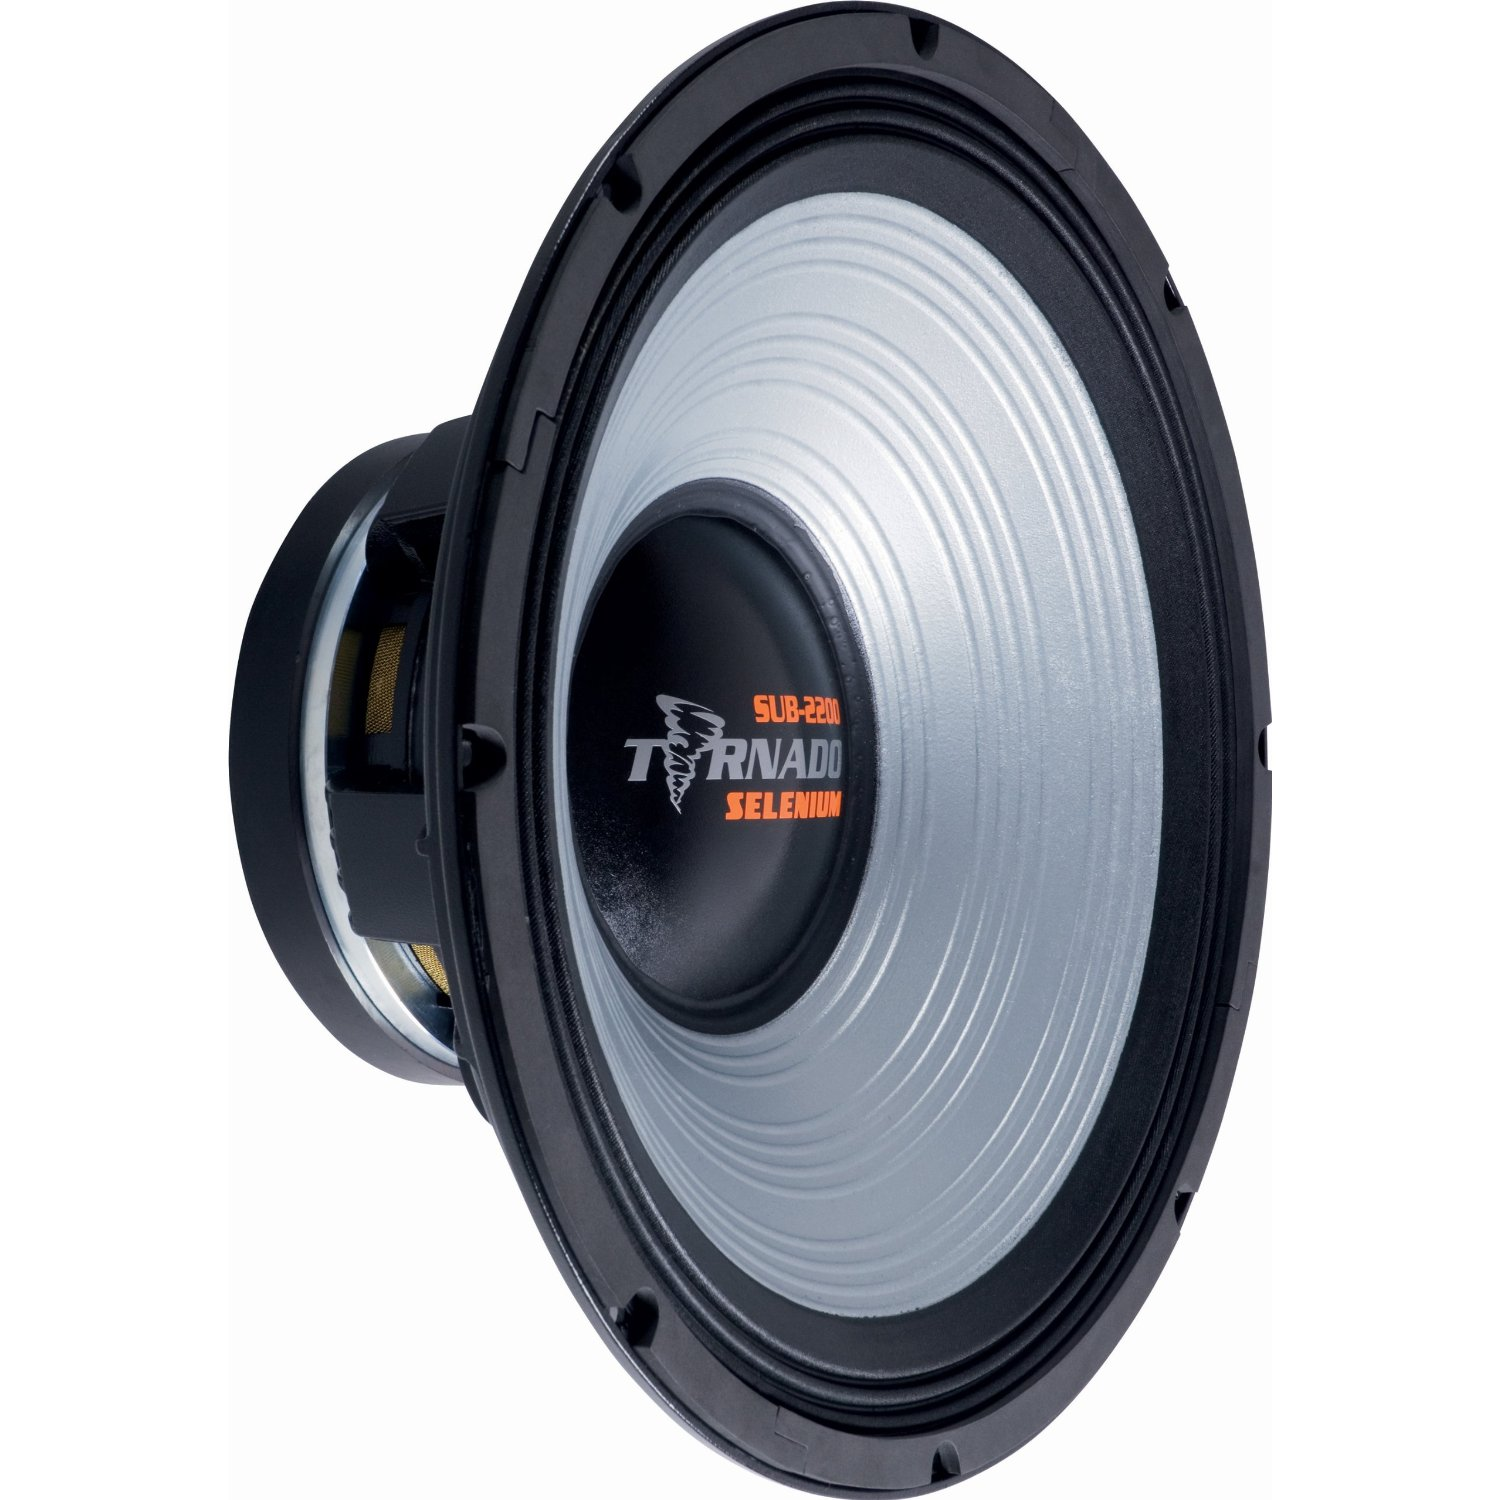 Buy Jbl Selenium 18sw3a 18 Inch Subwoofer 4 Inch Voice